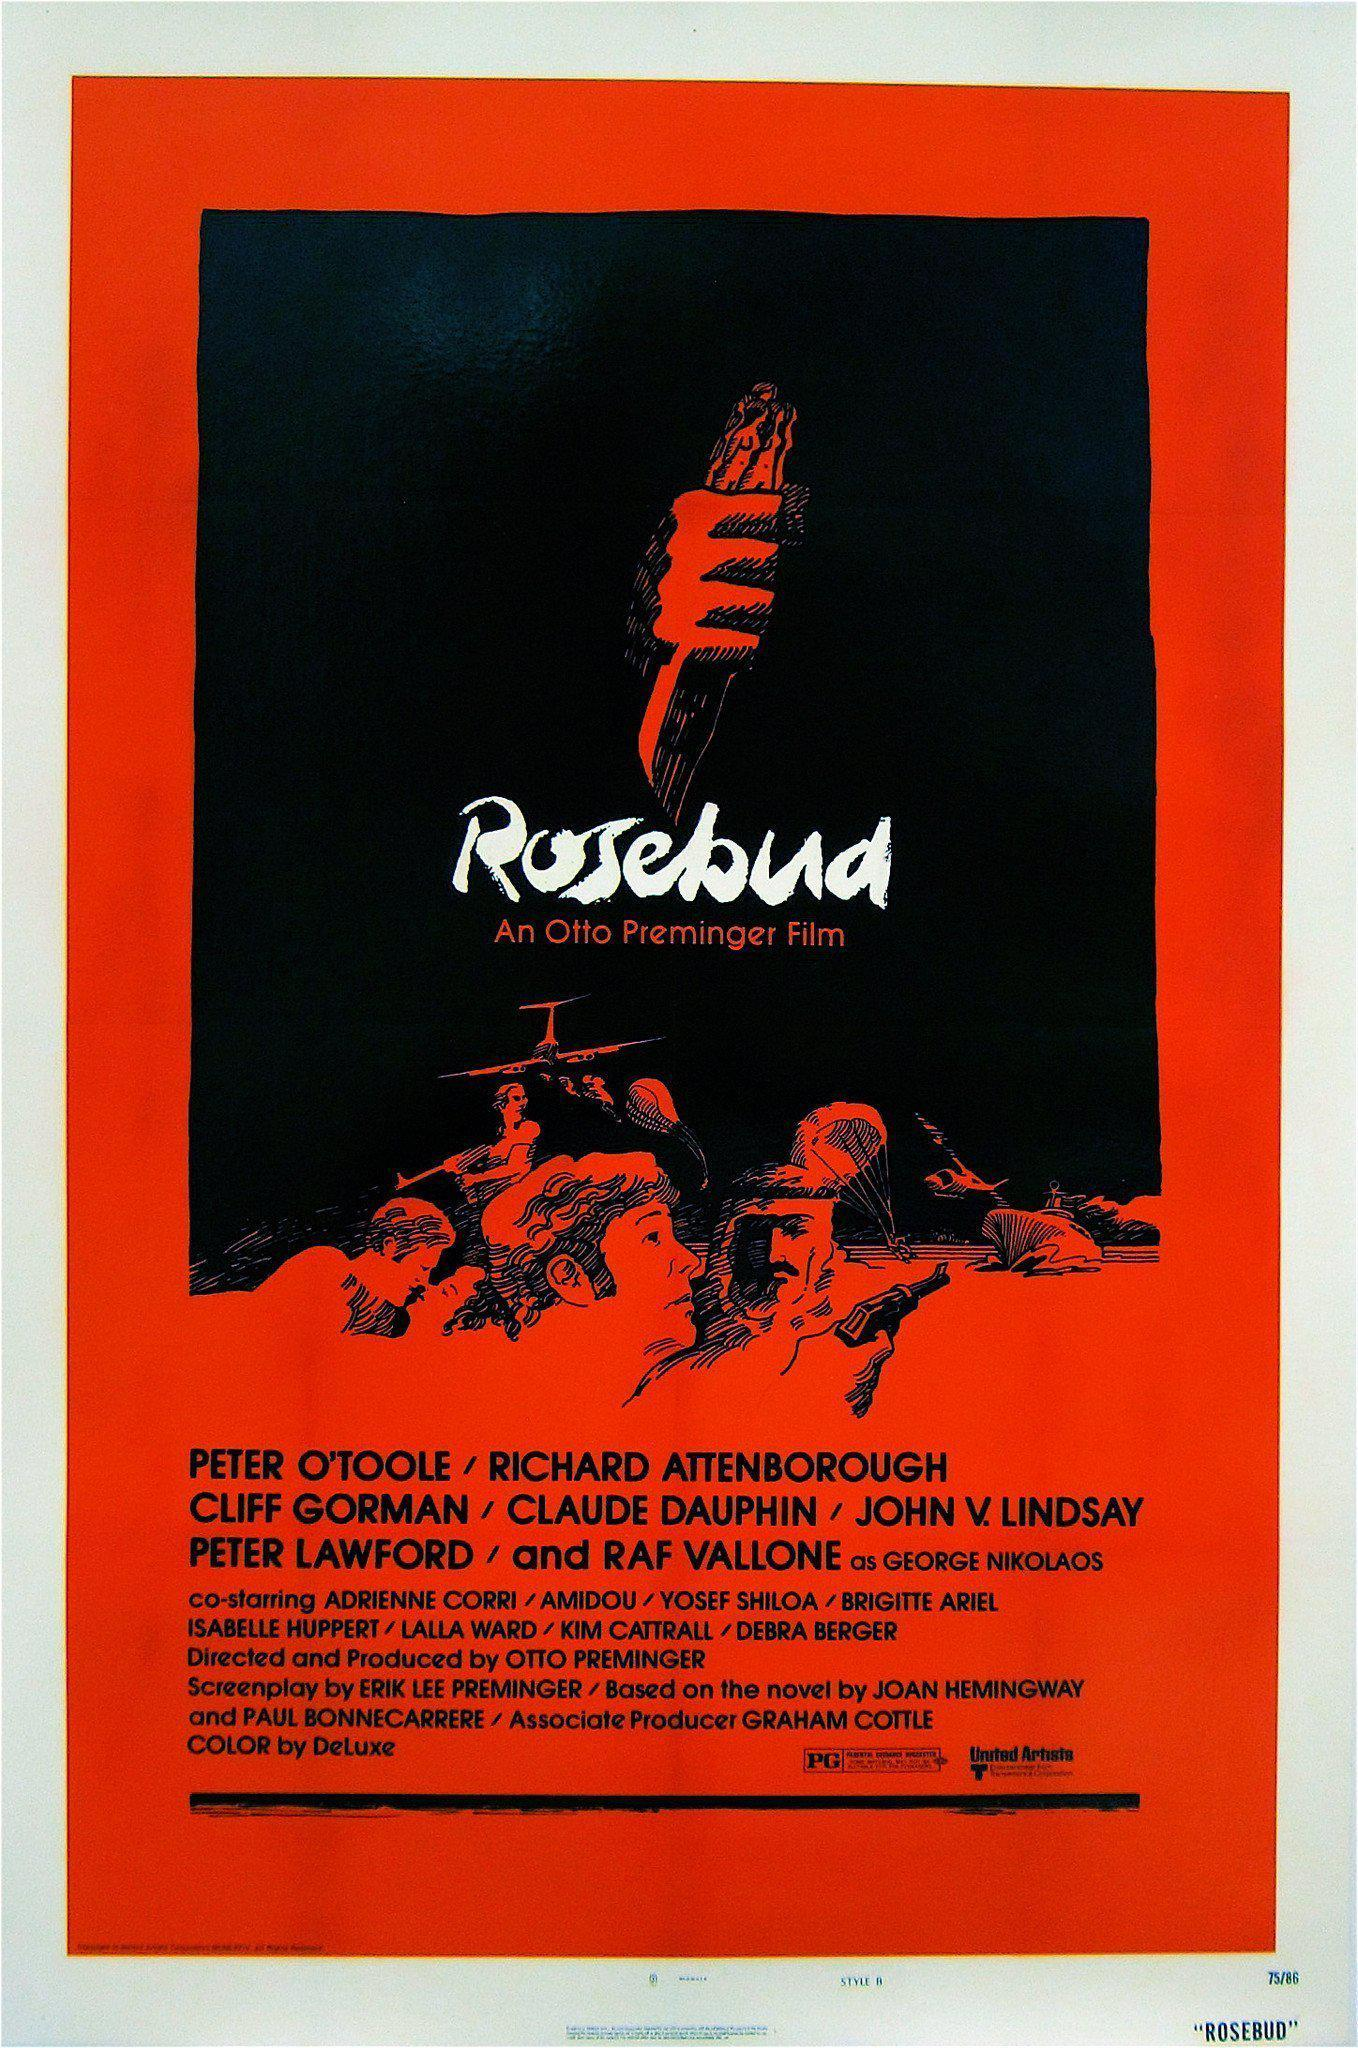 Rosebud 1 Sheet (27x41) Original Vintage Movie Poster